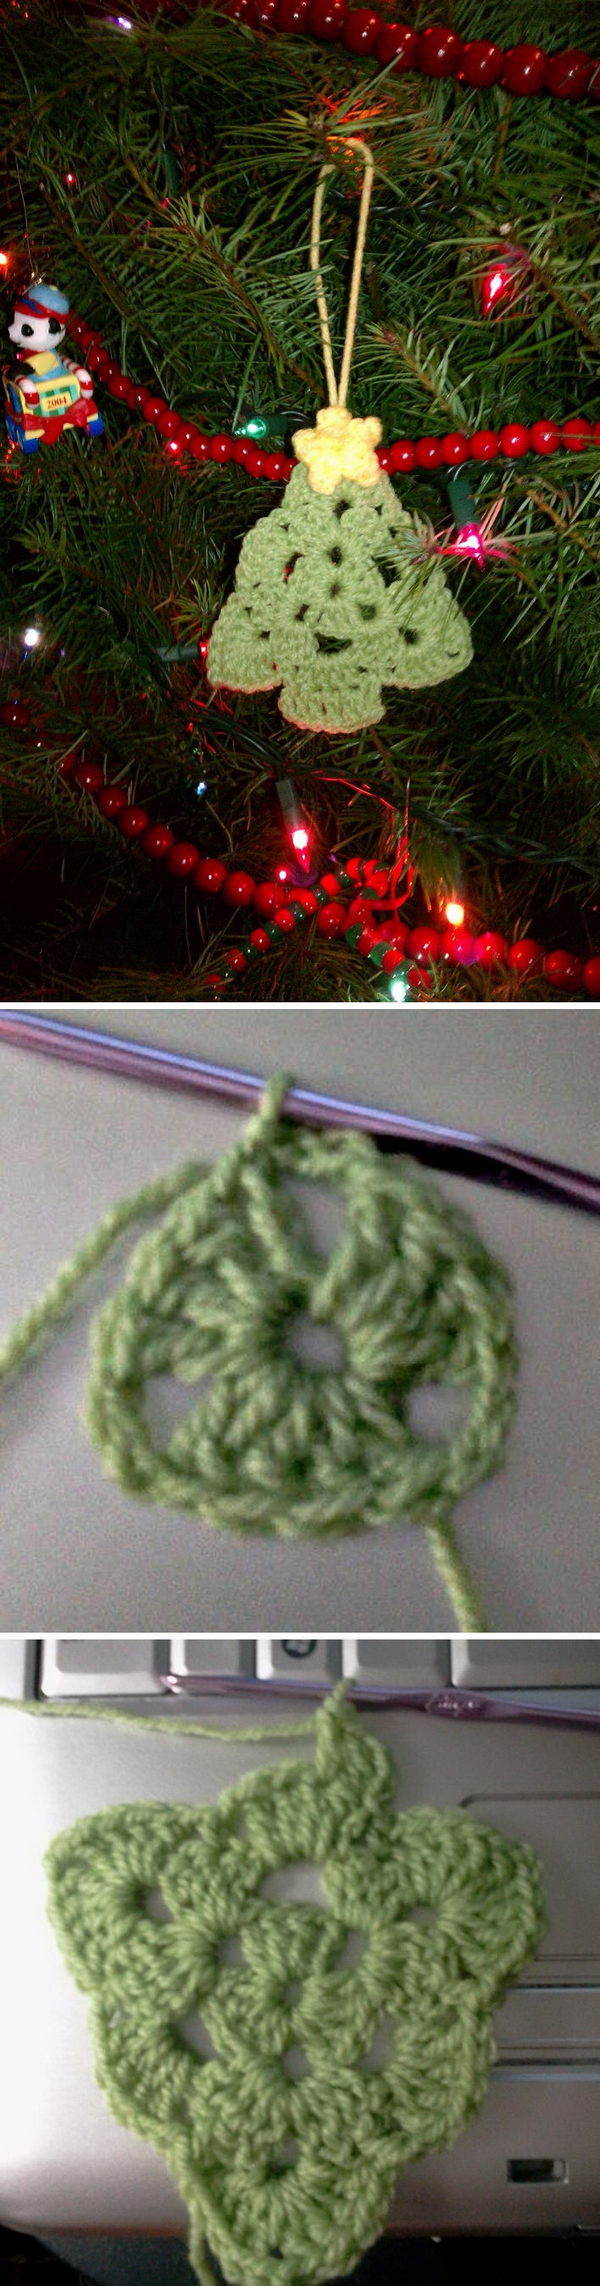 Crochet Christmas Tree Ornaments. Make some cute Christmas tree ornaments this year using crochet. It makes great decoration for Christmas tree or given holiday gifts!